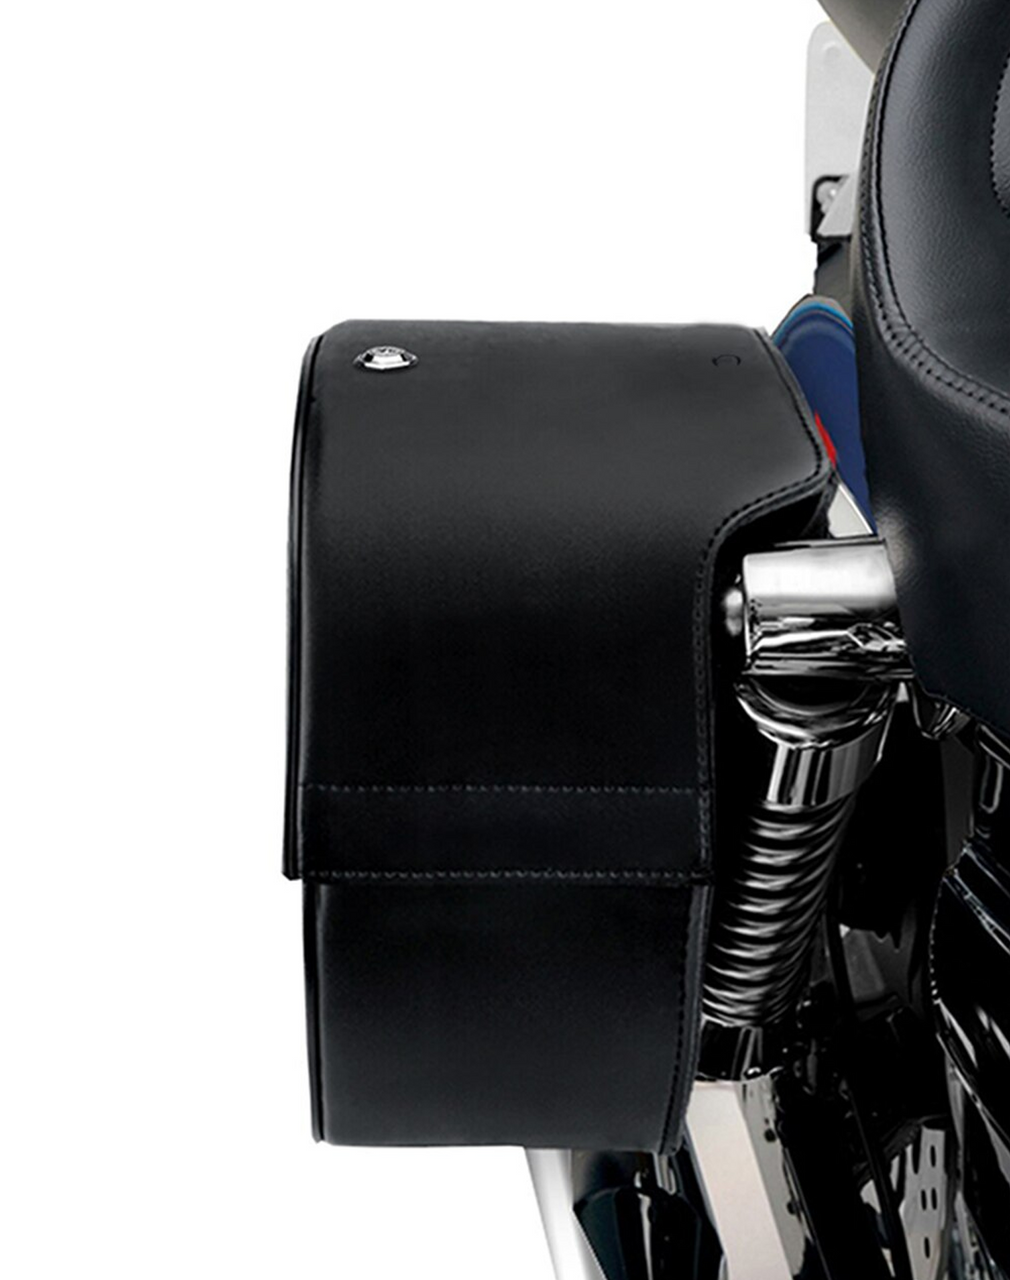 Viking Shock Cutout Single Strap Large Slanted Large Motorcycle Saddlebags For Harley Sportster Forty Eight 48 Shock Cutout View